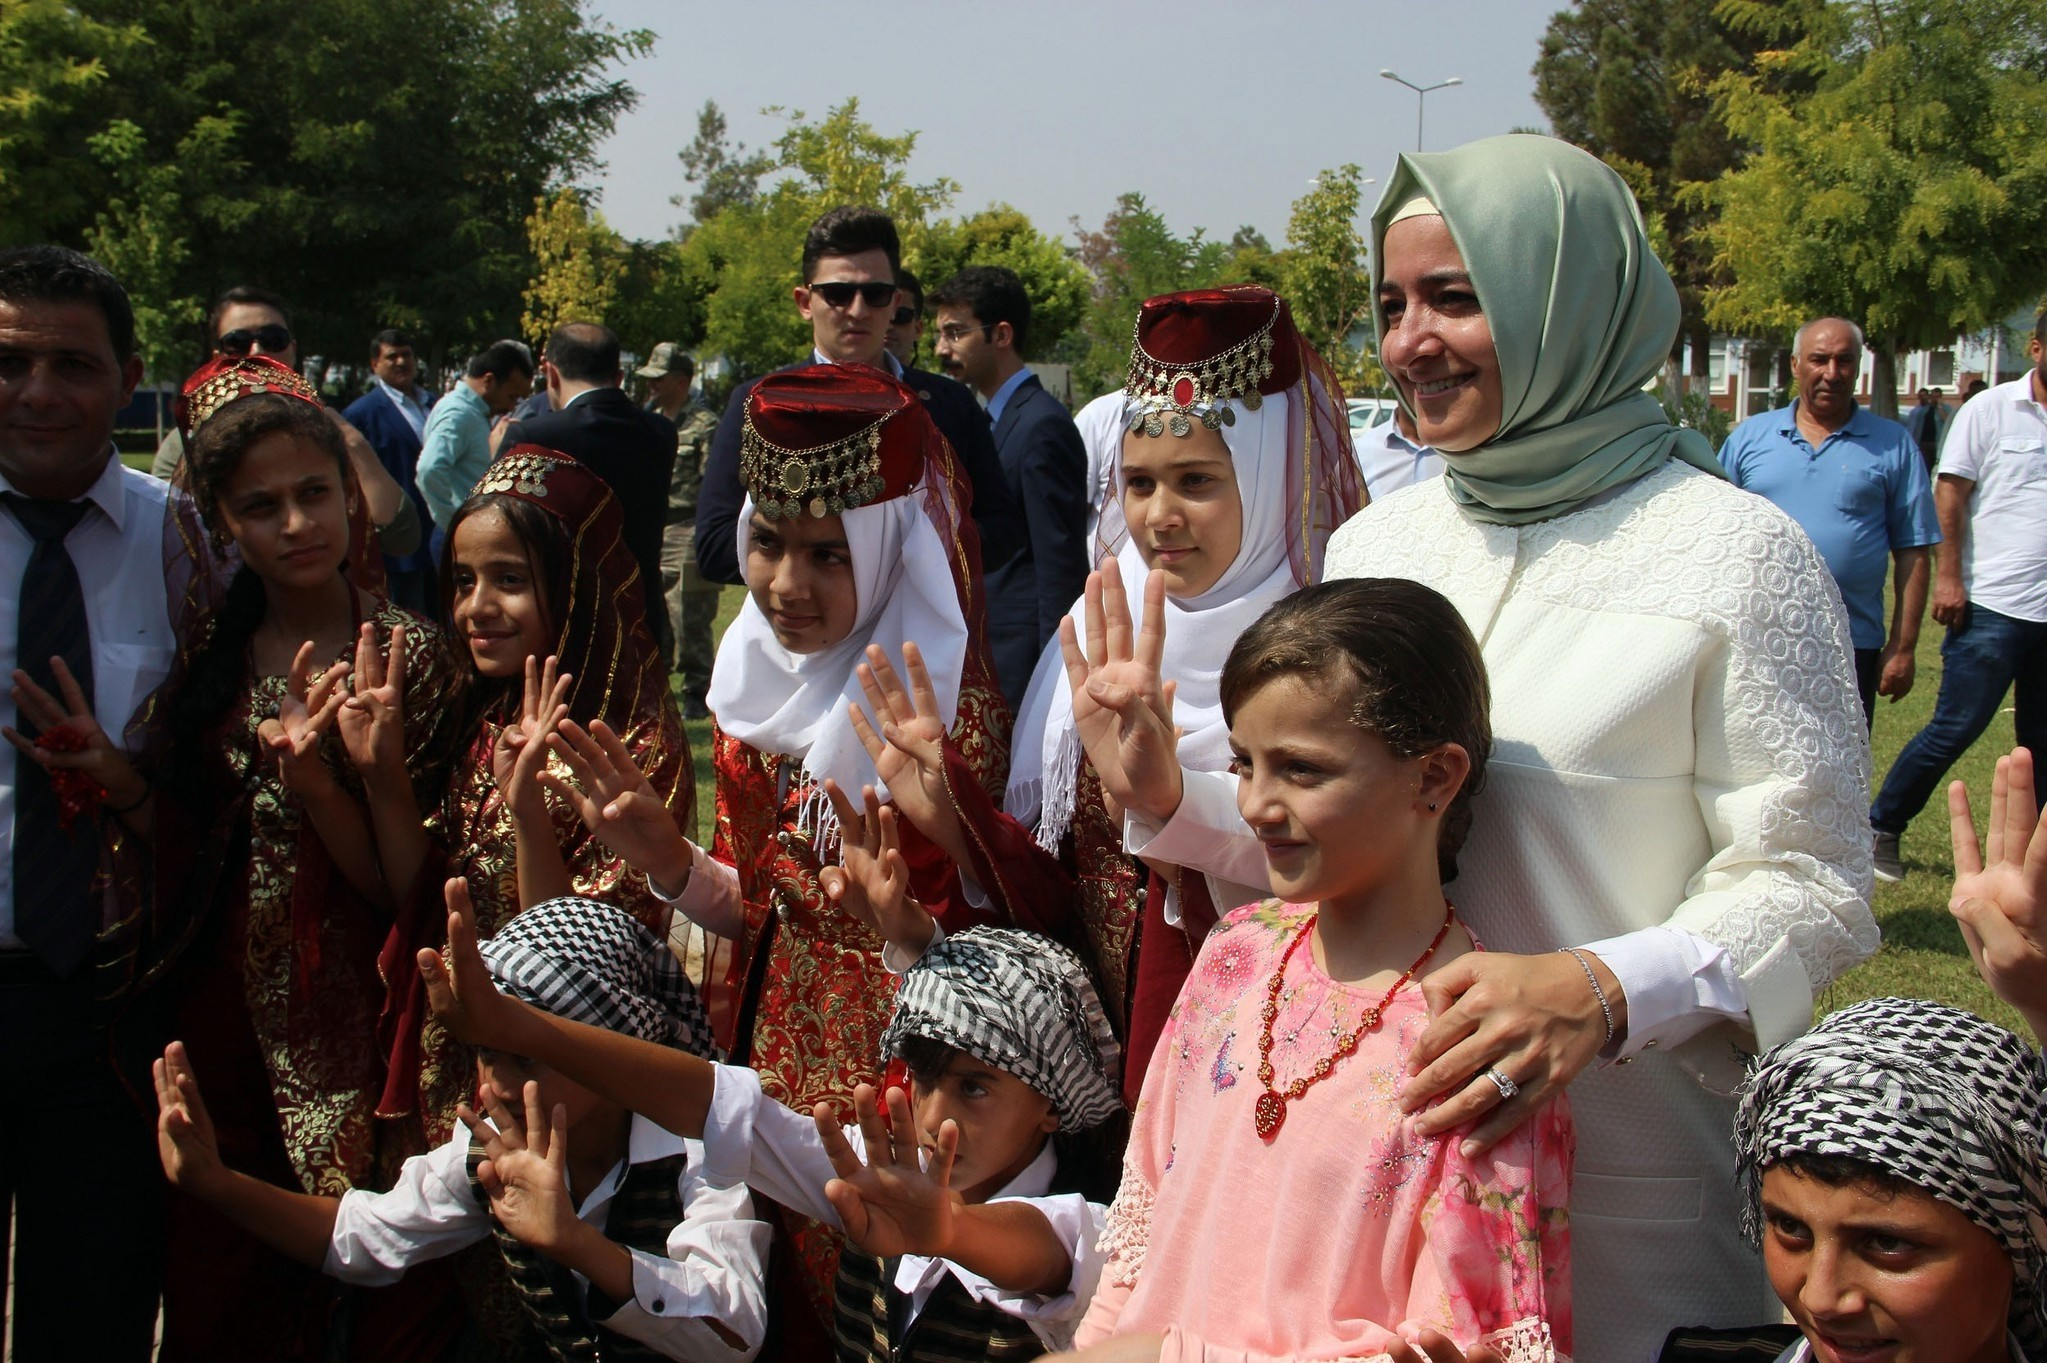 Family Minister Kaya met with Syrian children at refugee camp in Harran.